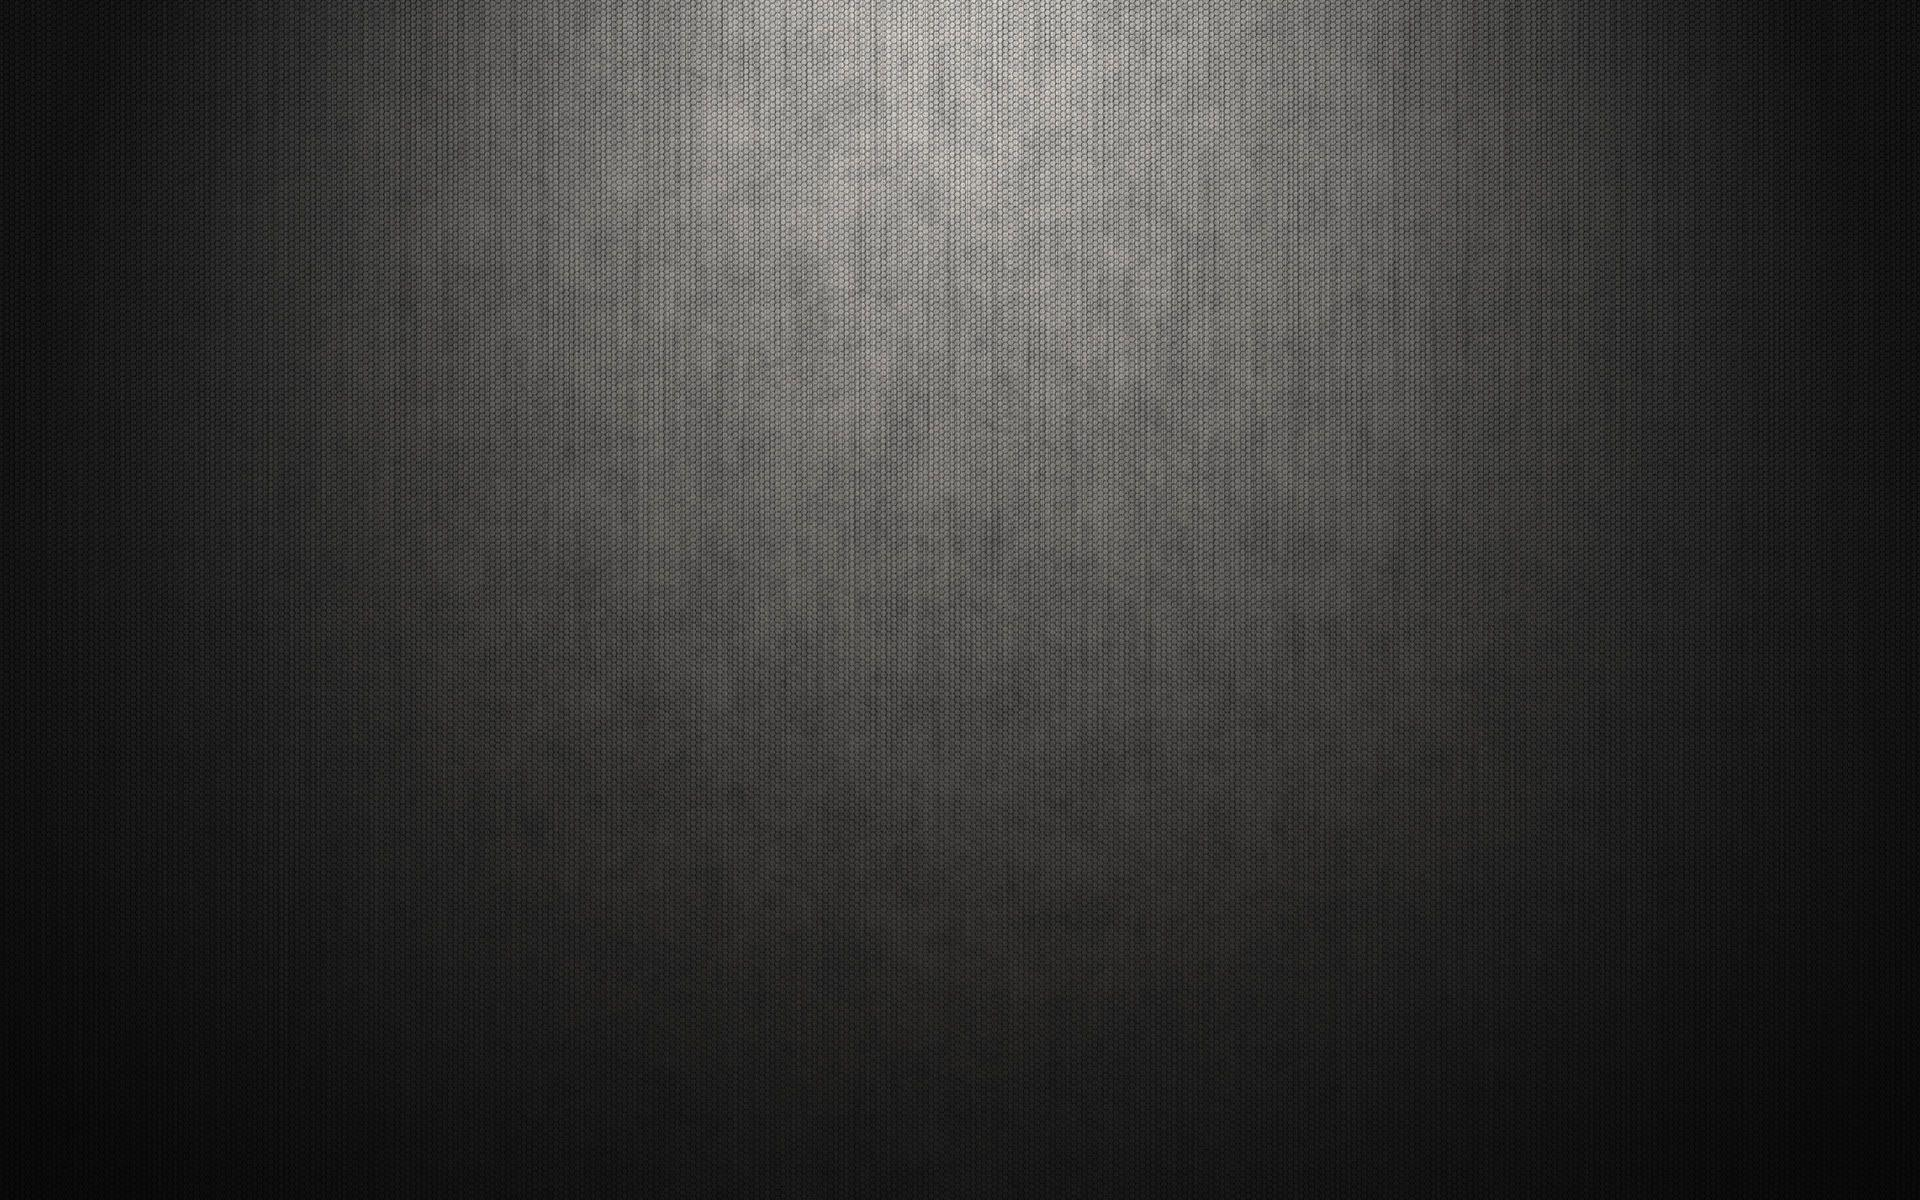 Image For > Black And Gray Backgrounds